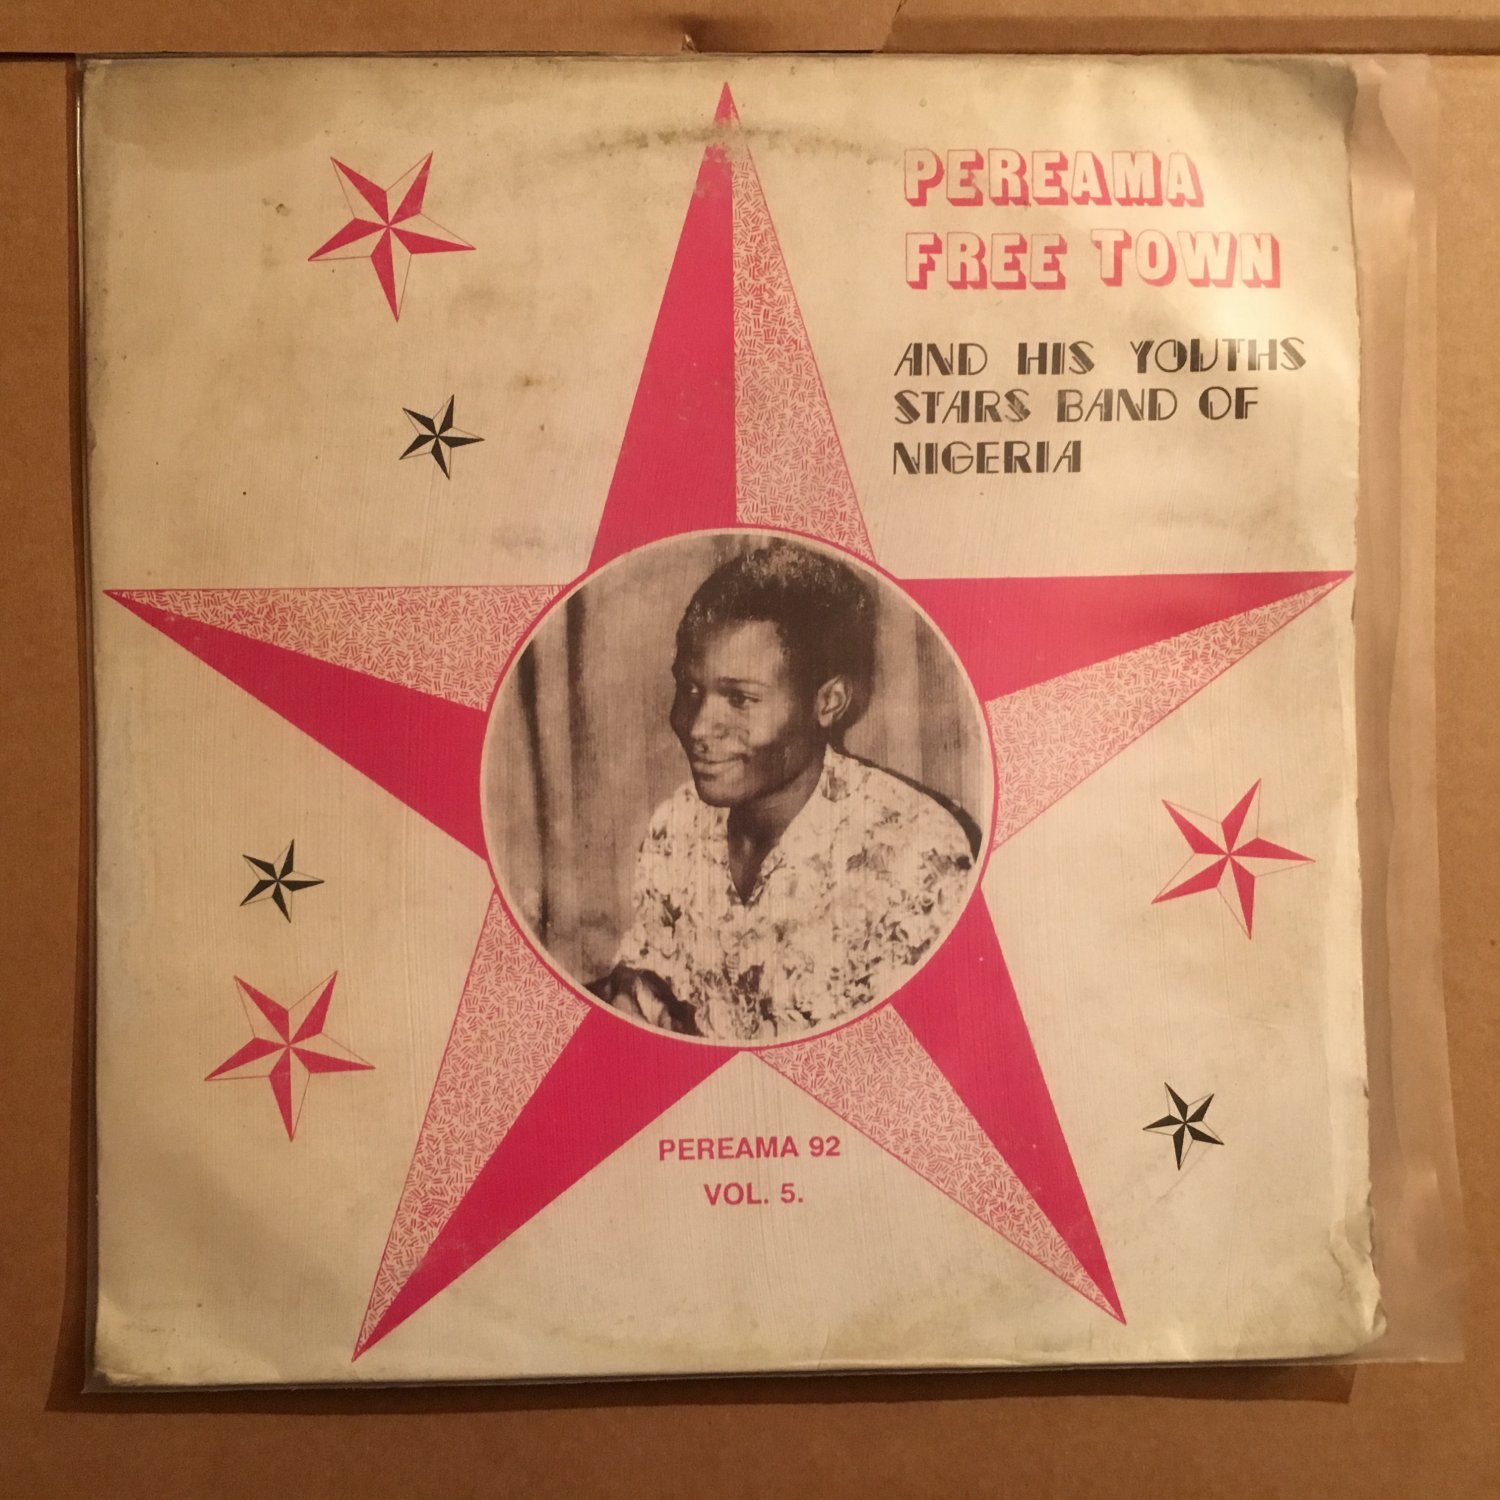 PEREAMA FREE TOWN & HIS STARS BAND LP vol. 5 NIGERIA mp3 LISTEN